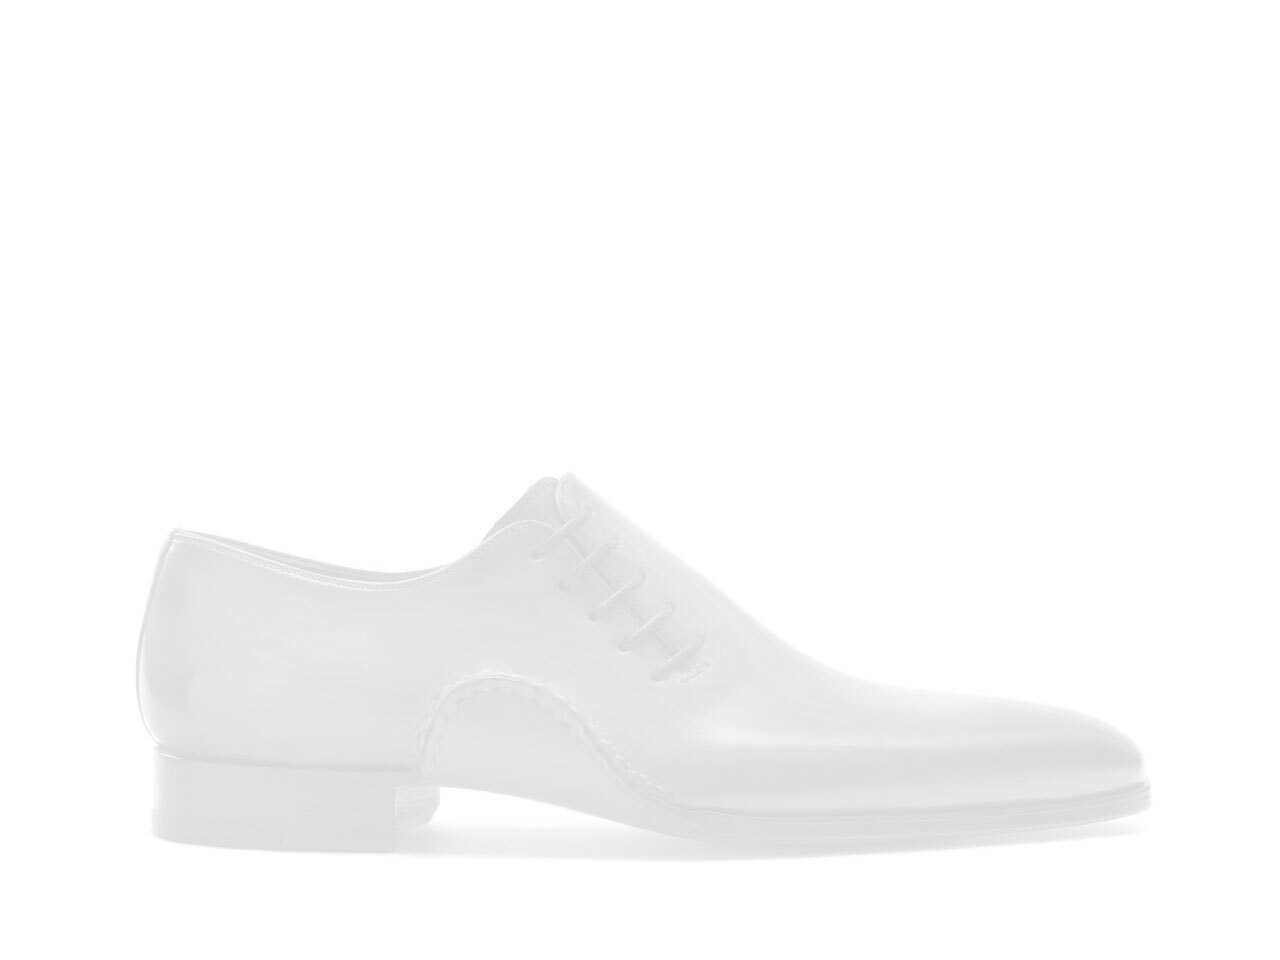 Sole of the Magnanni Elonso Mid Tinto Men's Sneakers